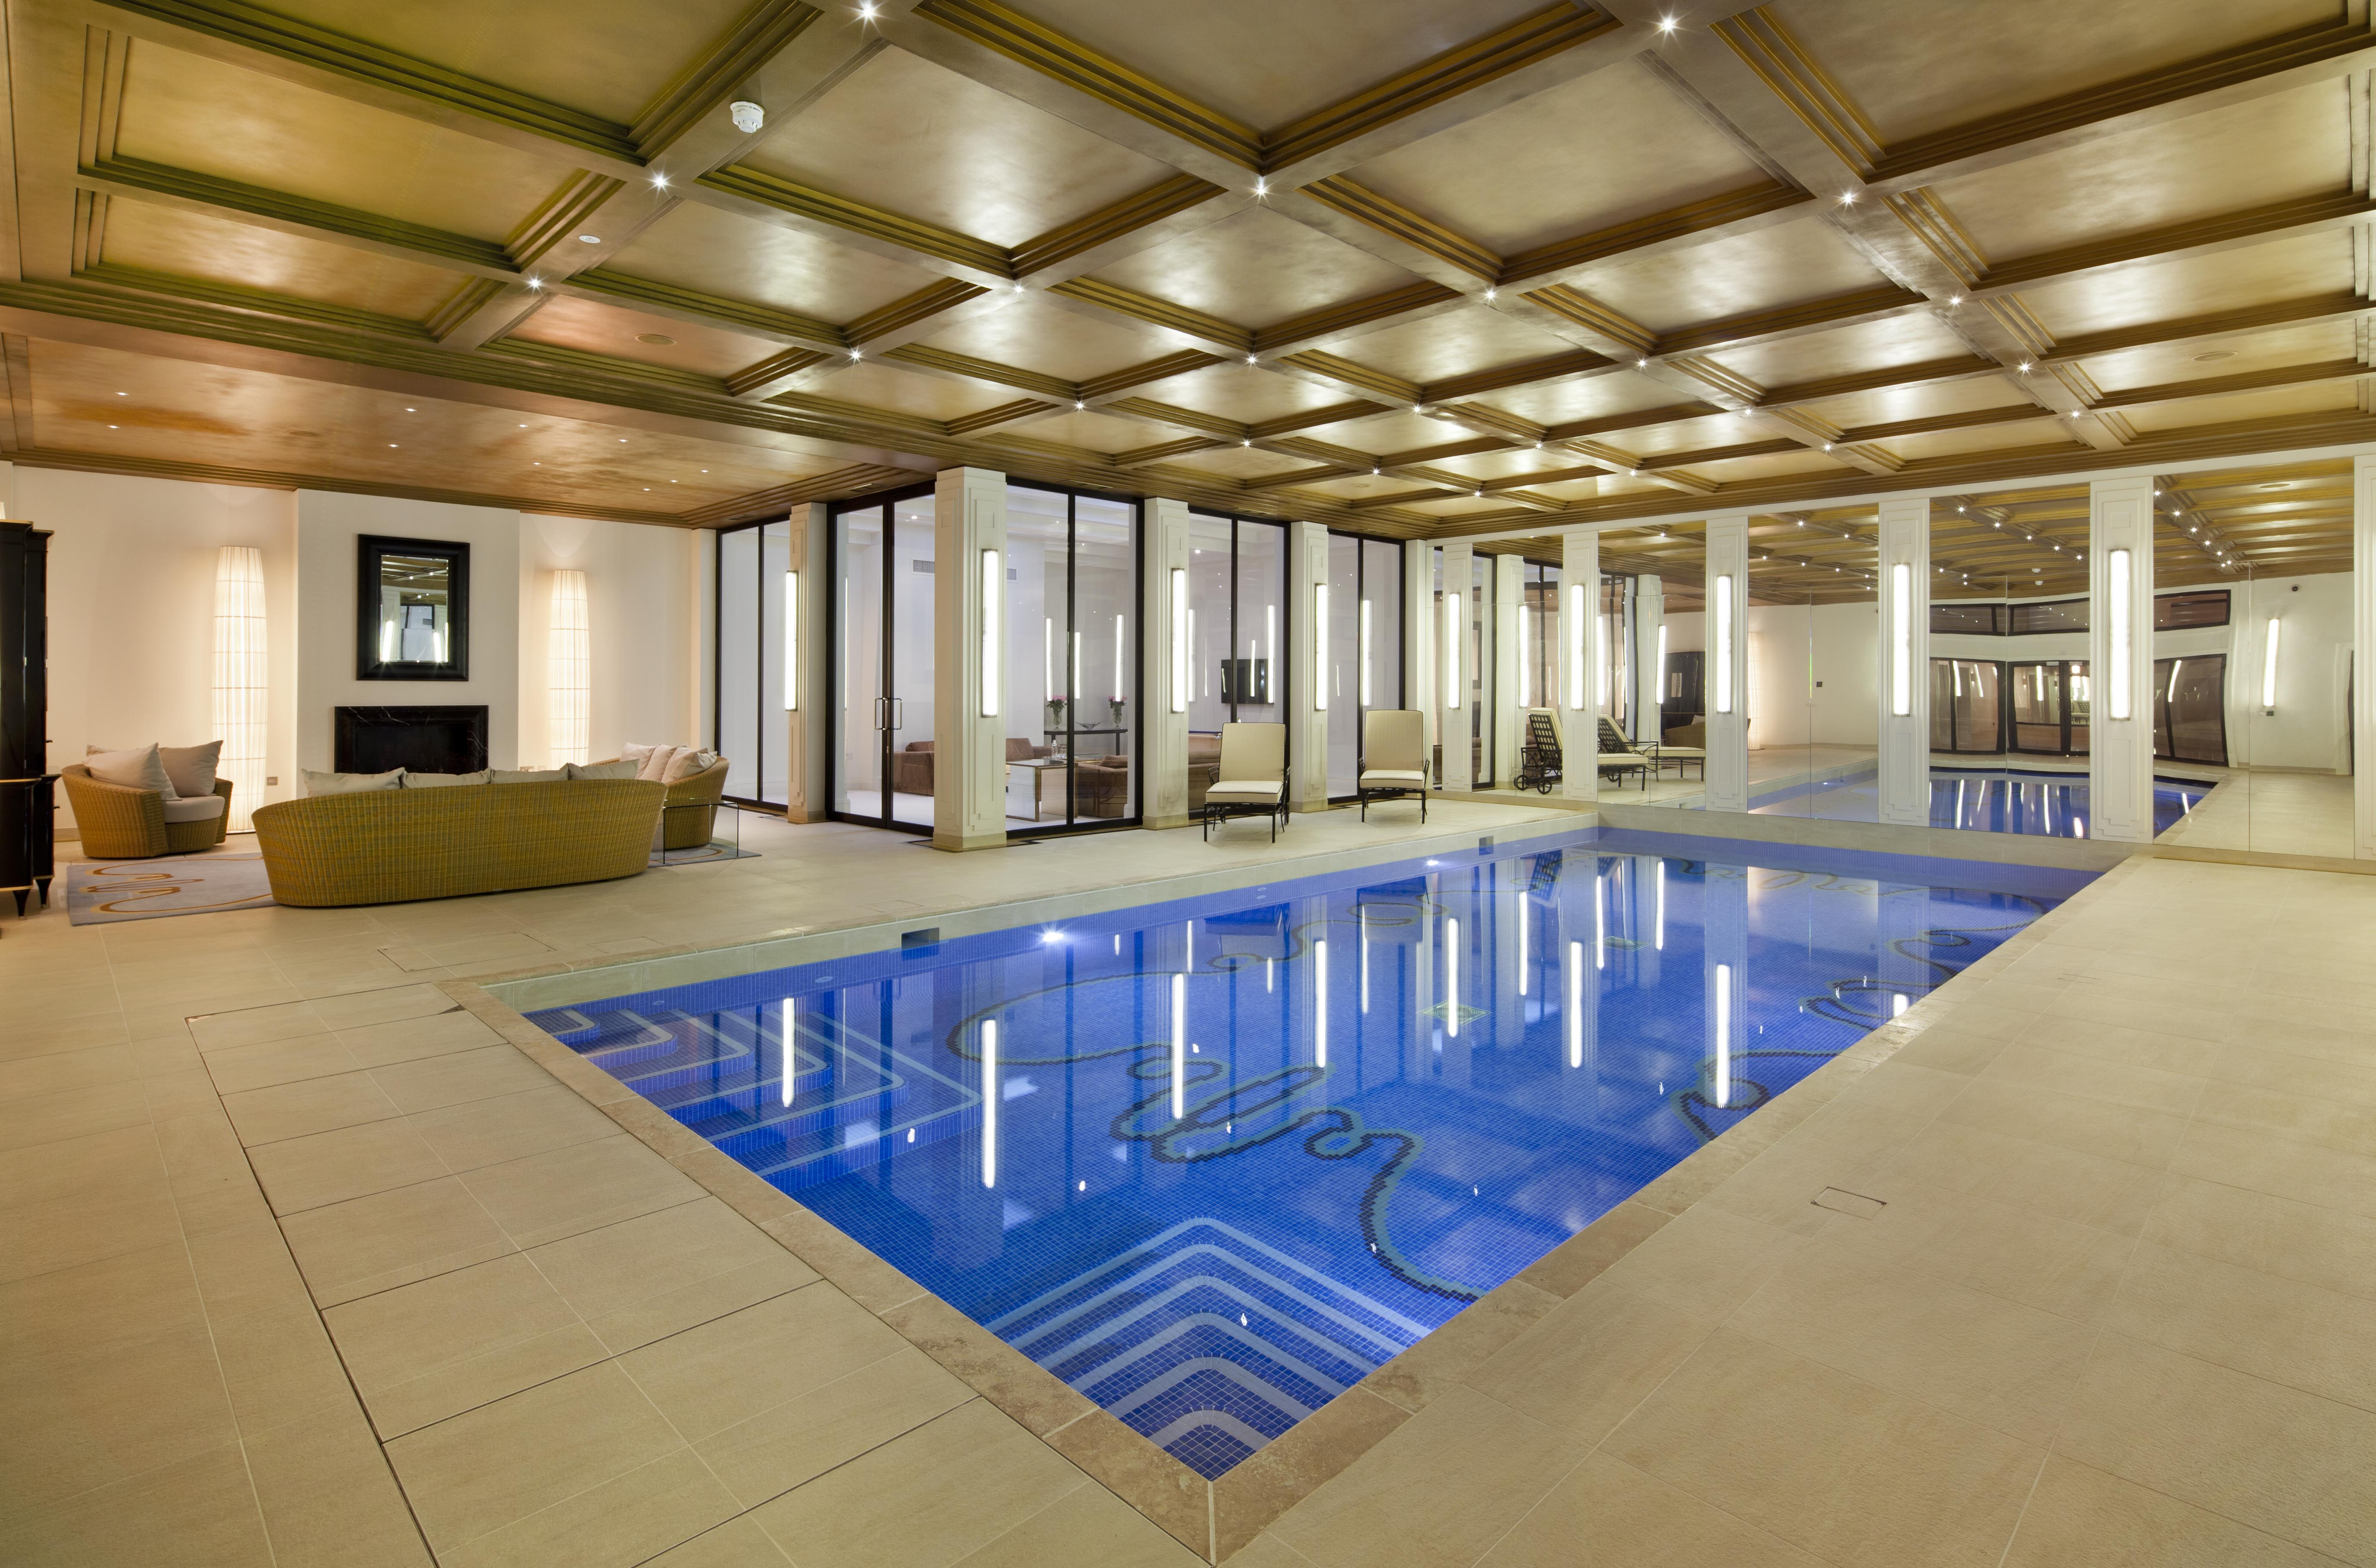 Luxurious Facilities Include This High Specification Swimming Pool In The Basement Isg